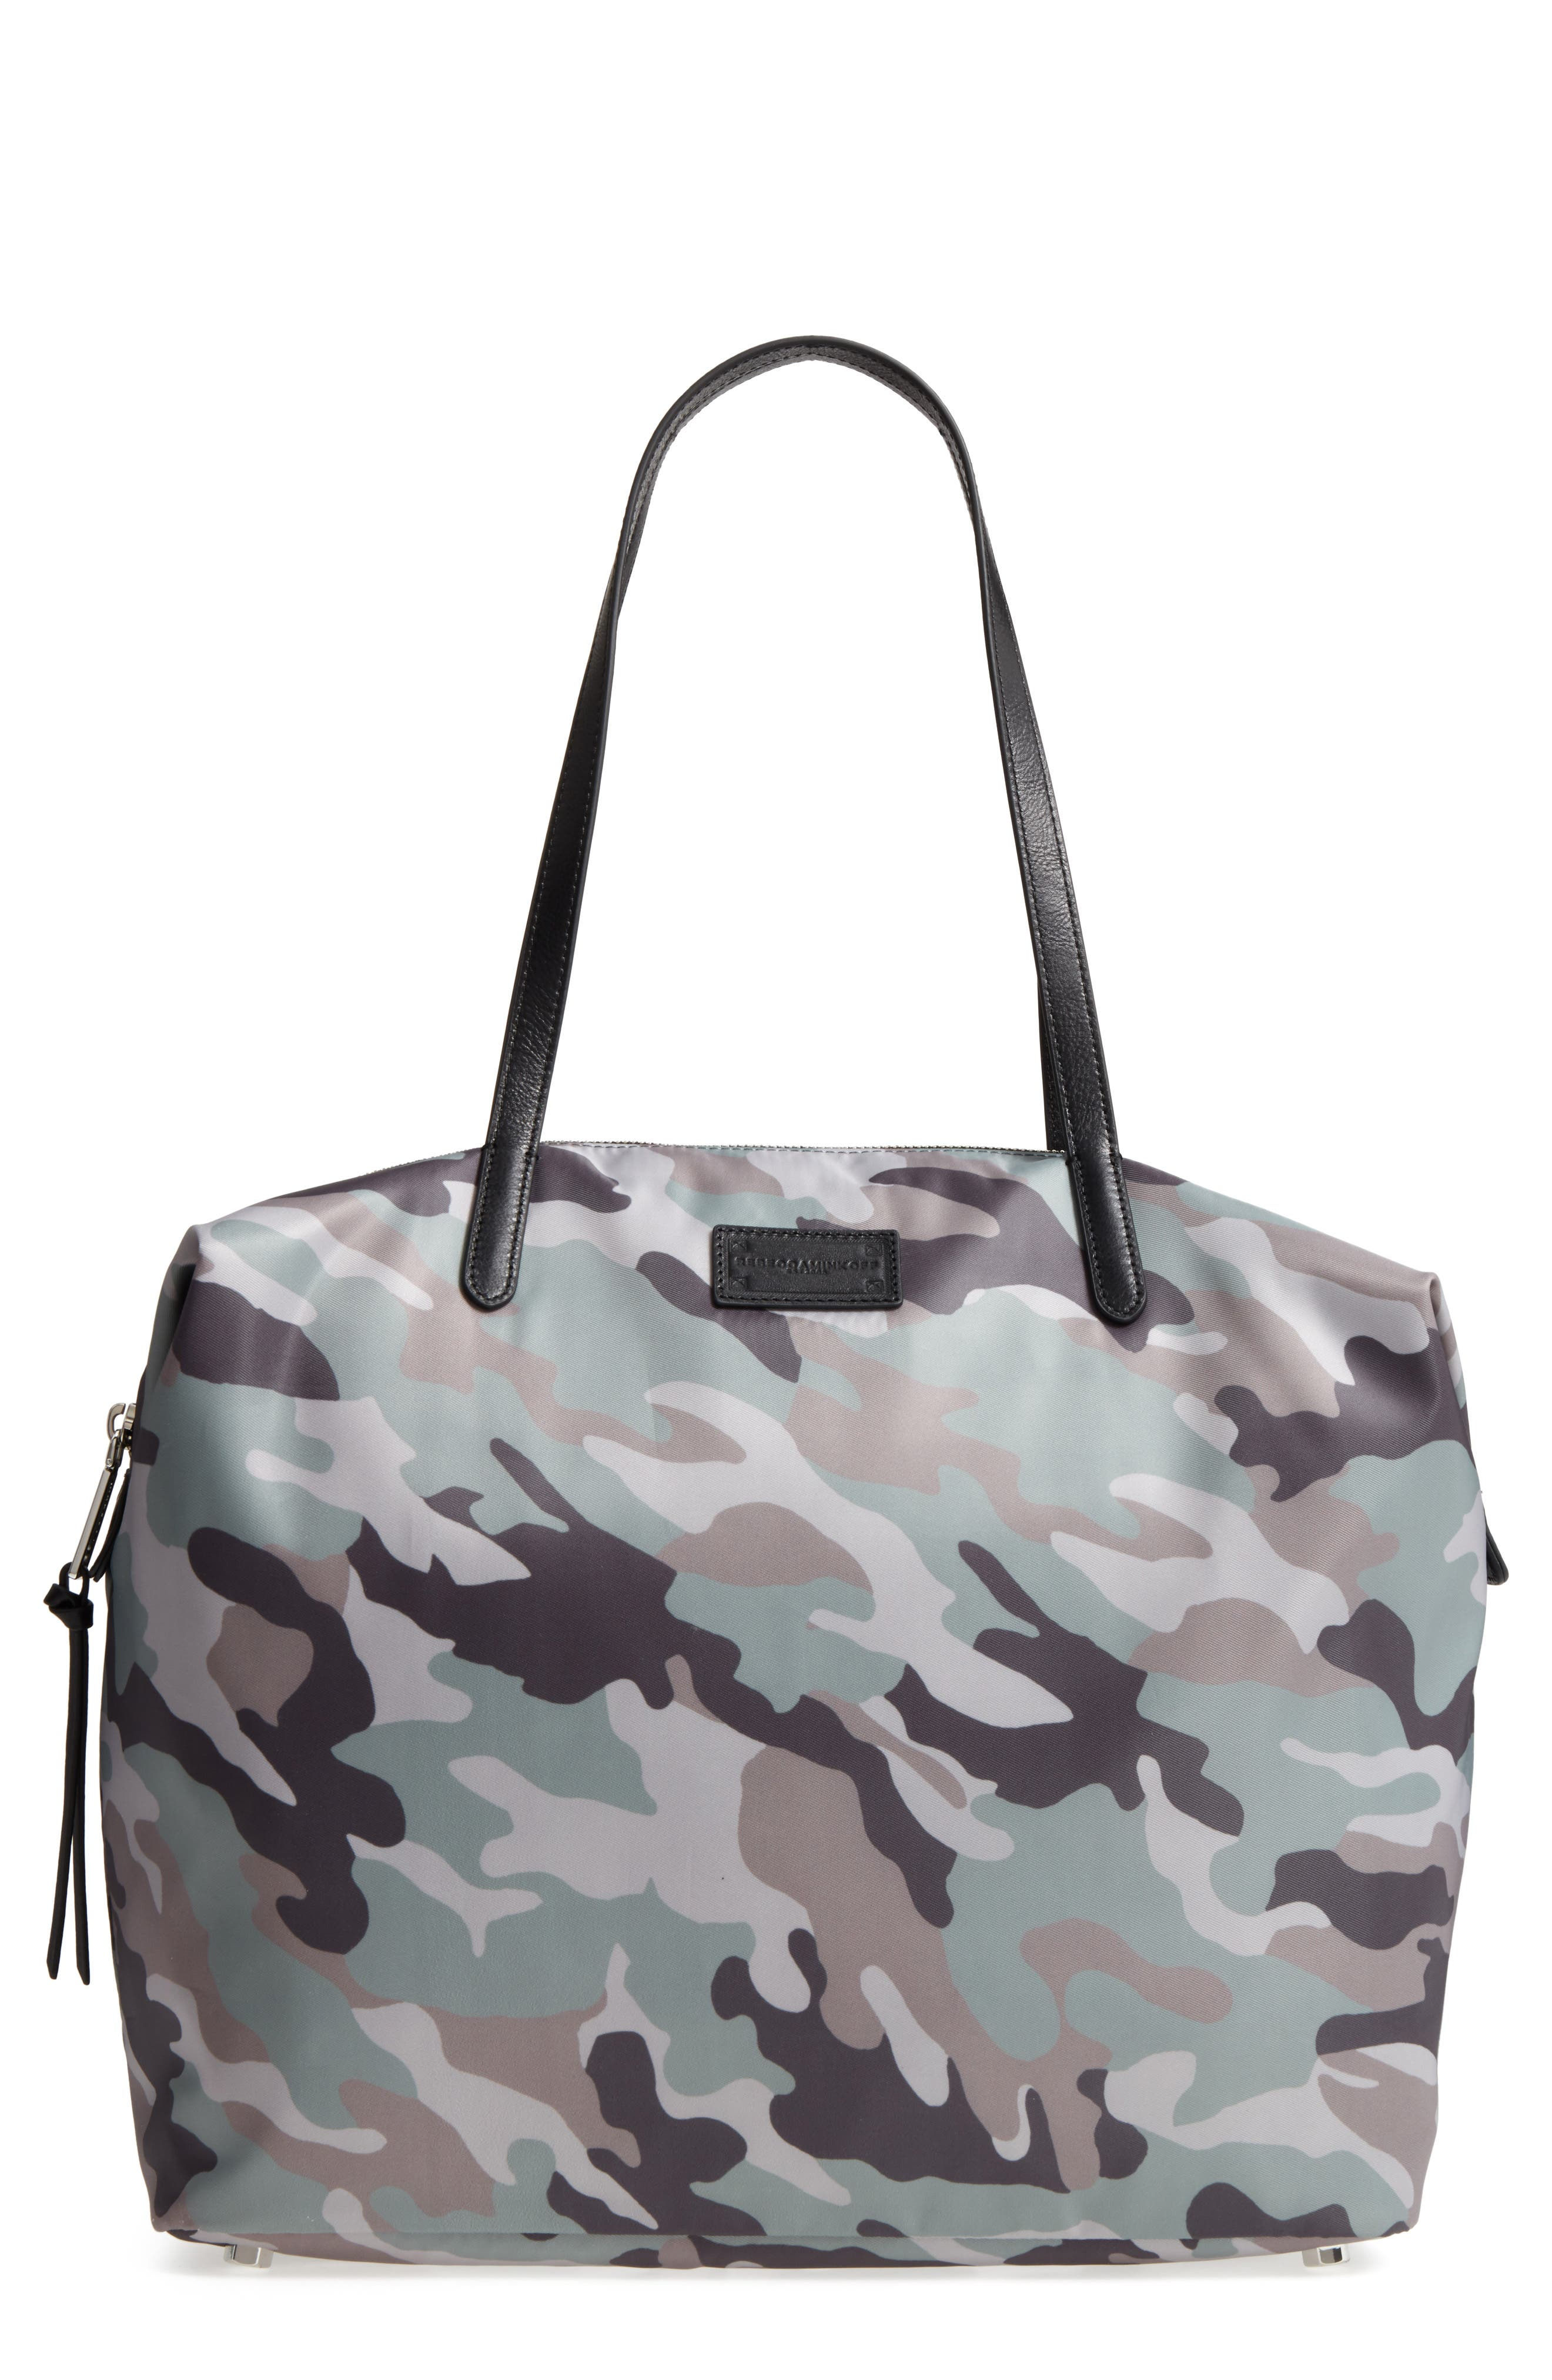 Washed Nylon Tote - Green in Army